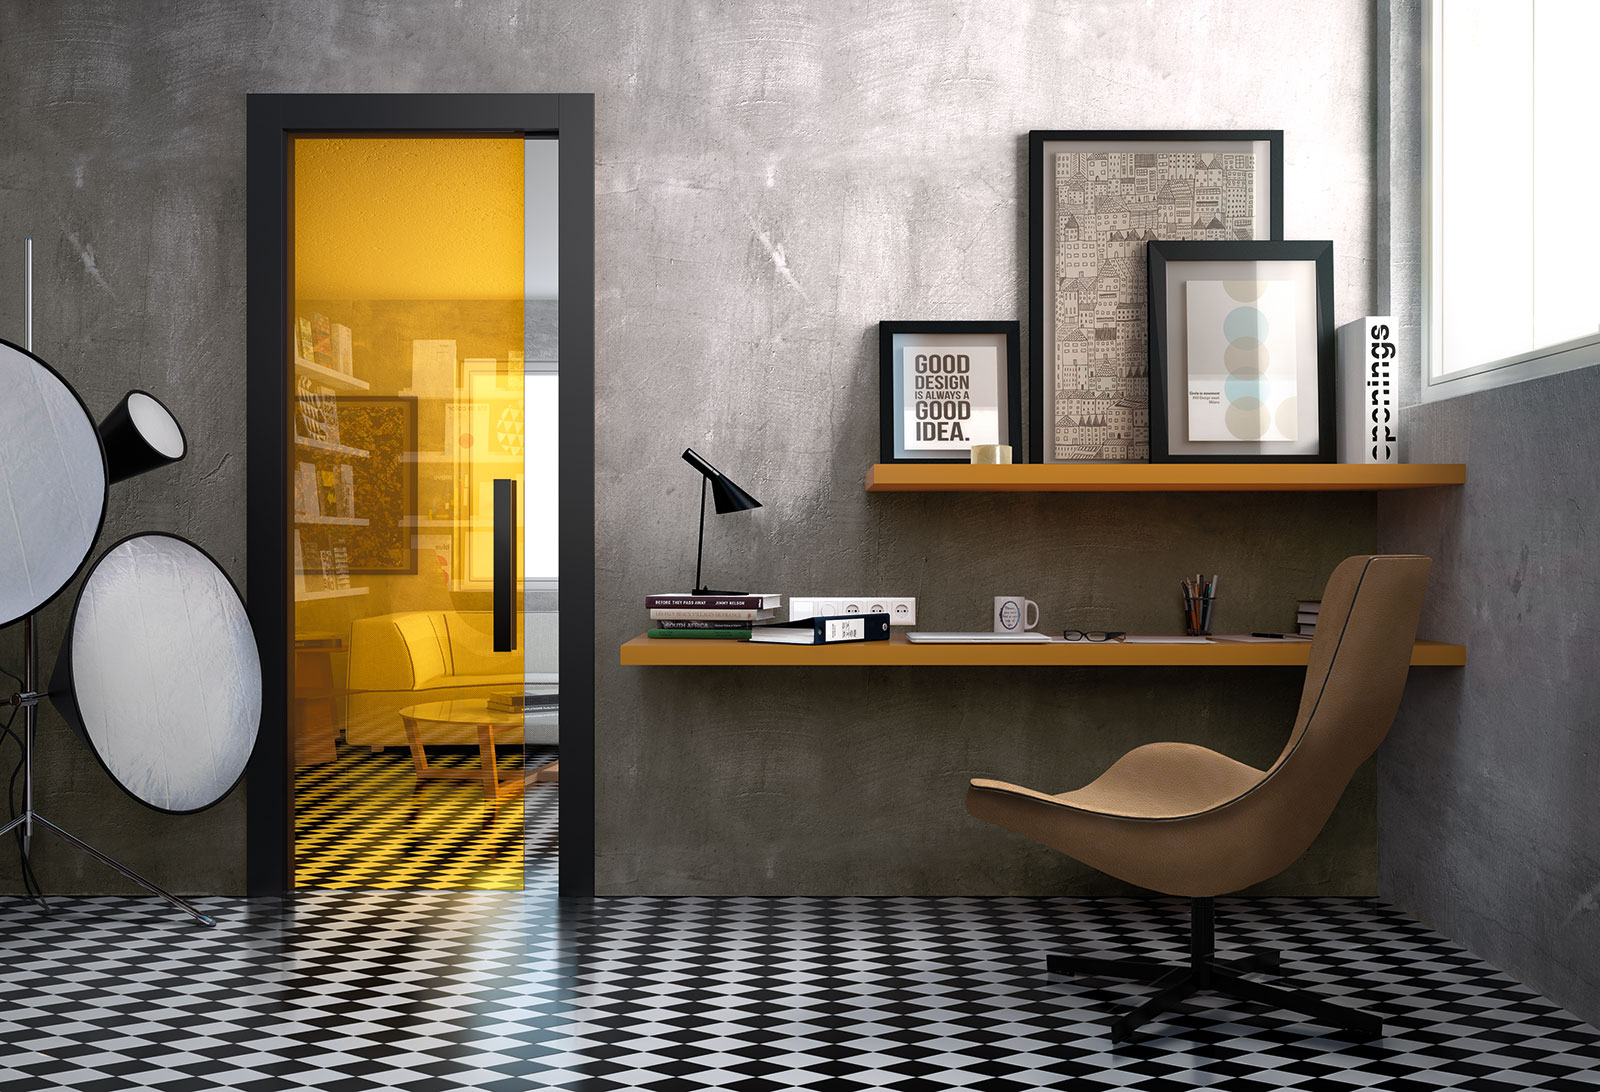 Disappearing sliding door curry clear glass black lacquered Xilo frame & Disappearing Sliding Glass Doors | Henry glass